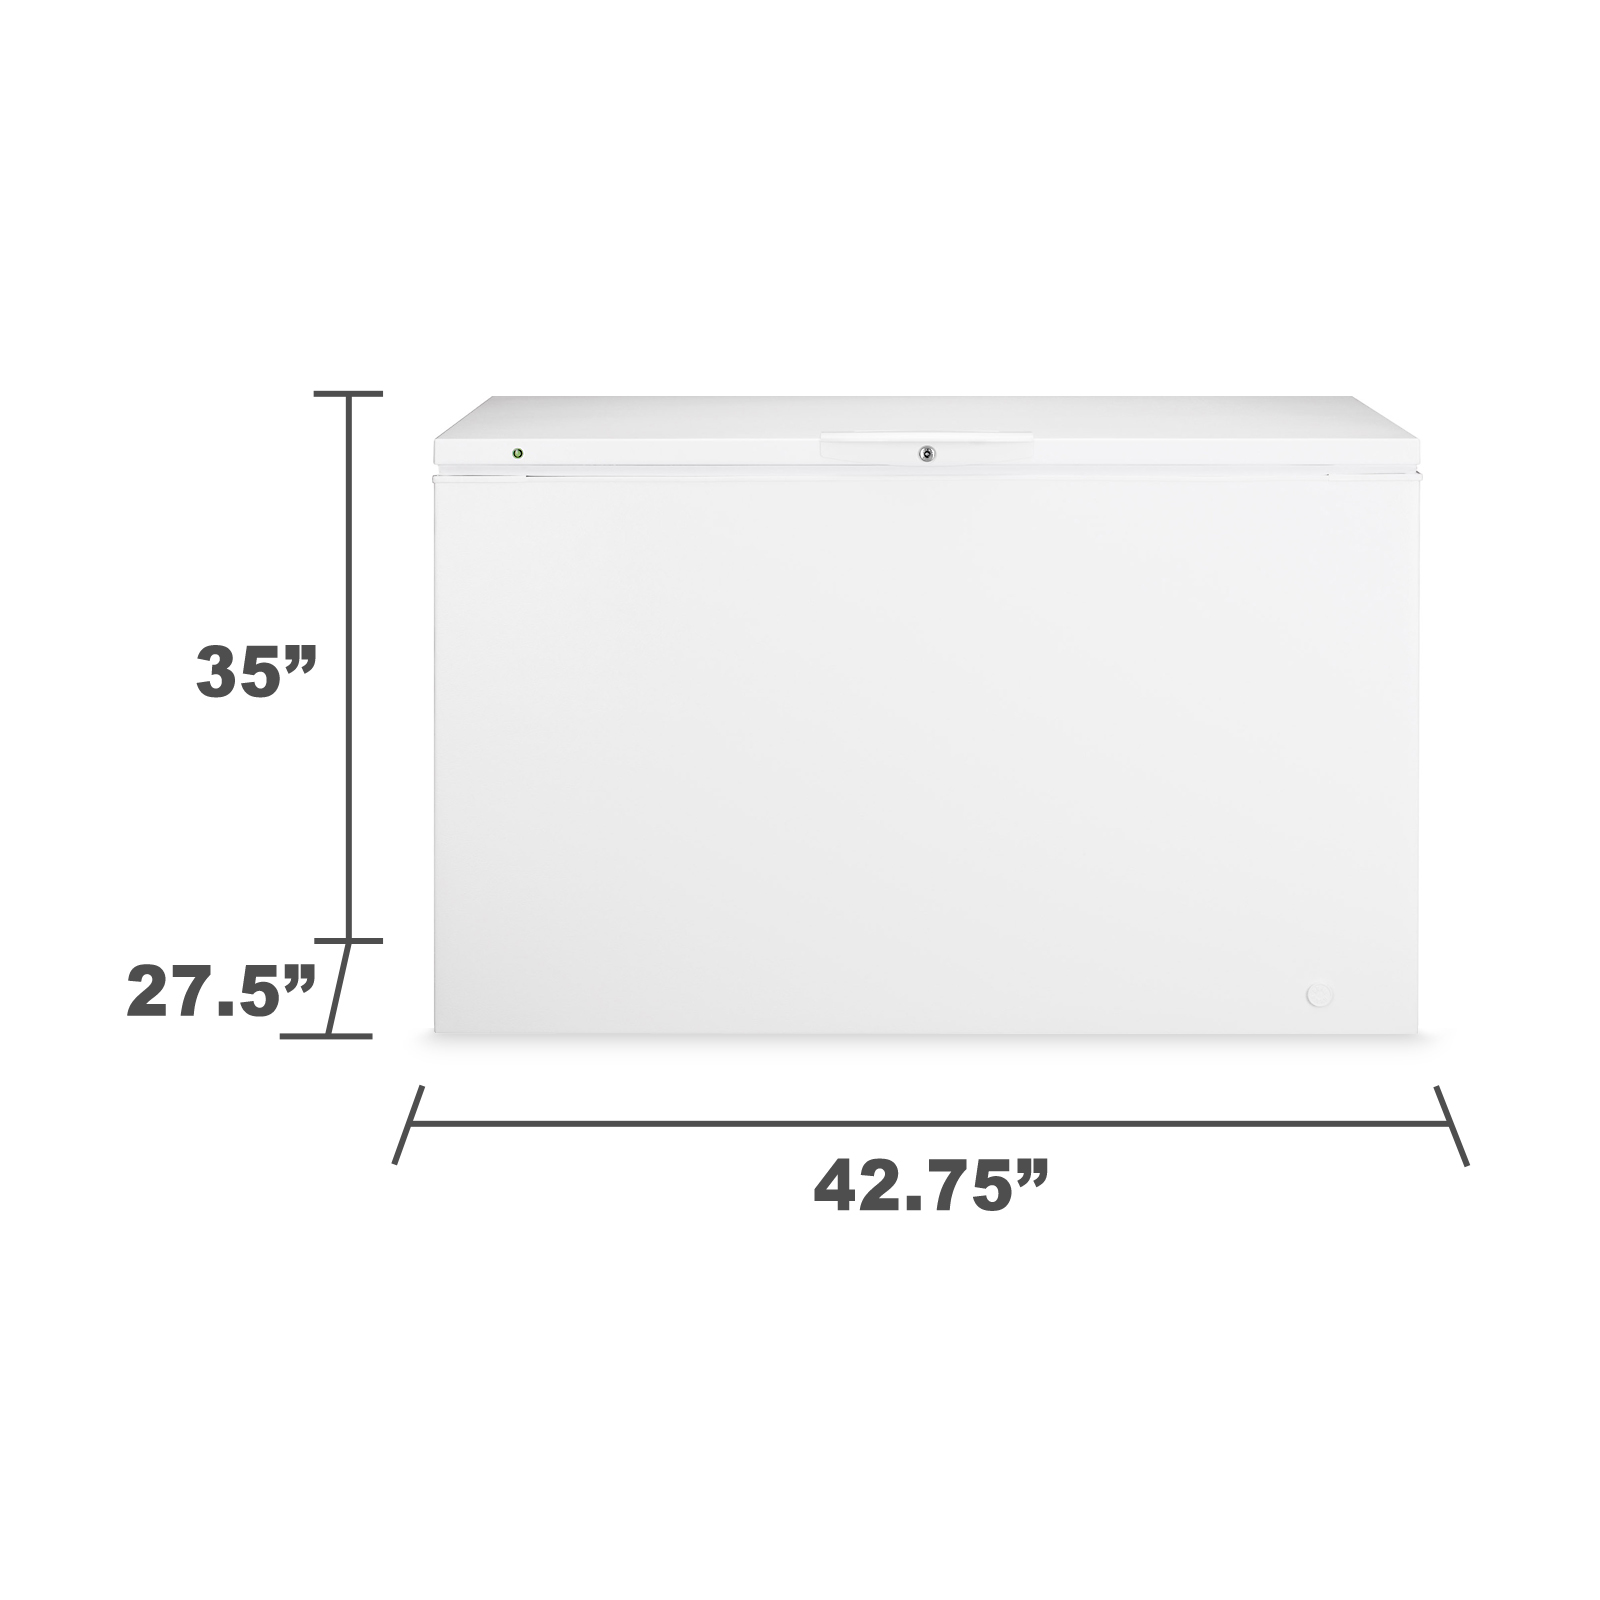 Kenmore 12112 11.1 cu. ft. Kenmore Chest Freezer - White